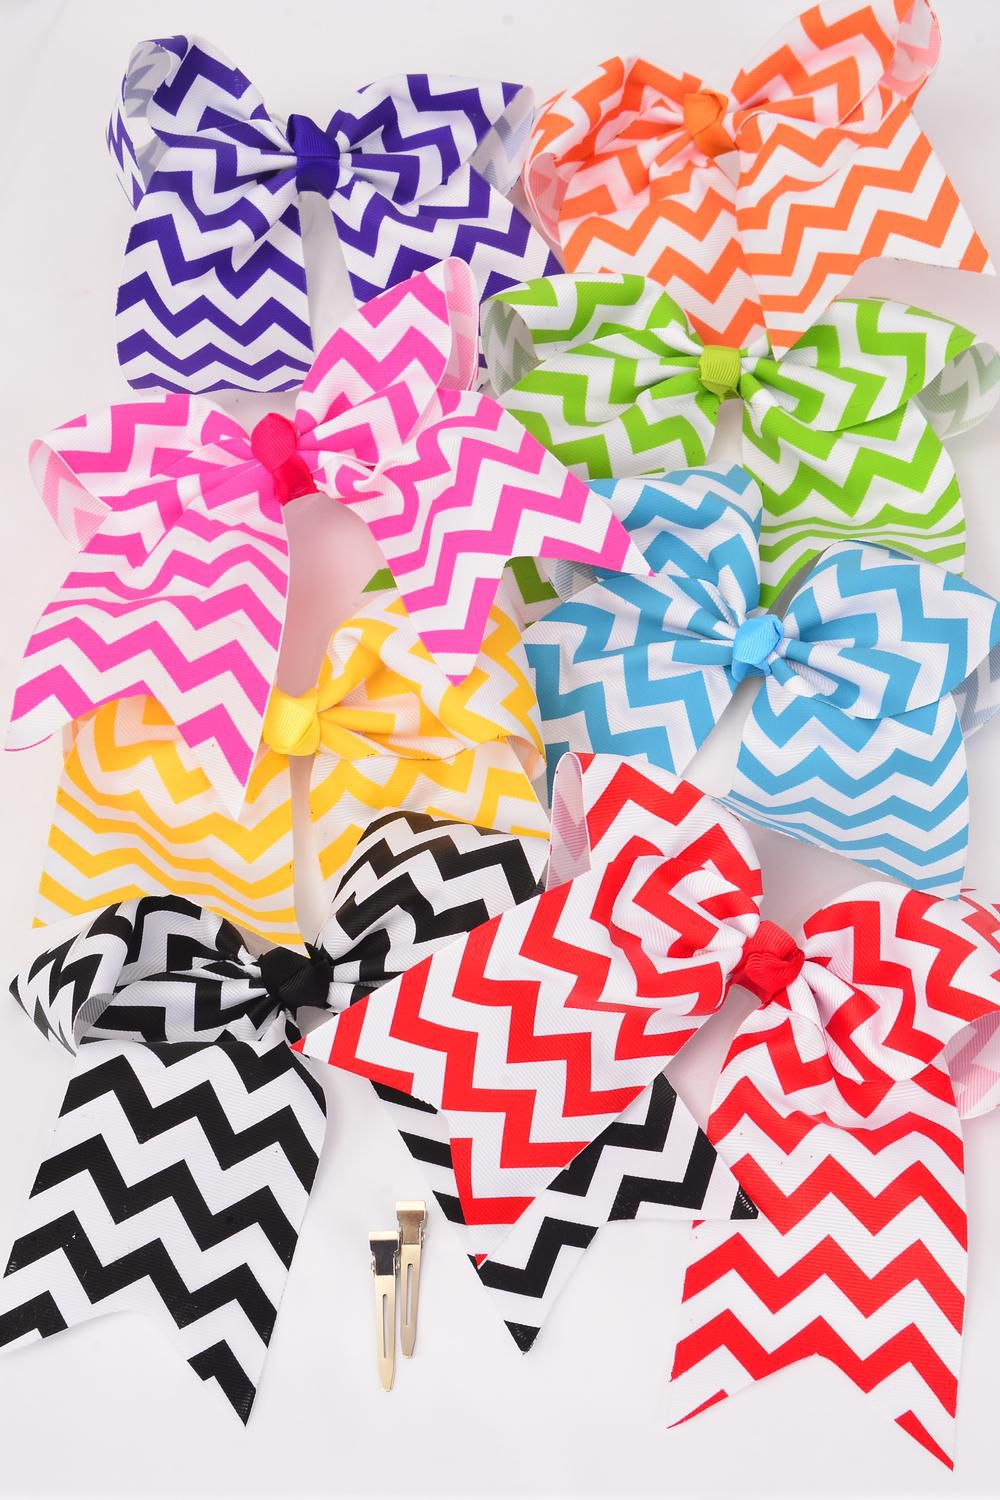 "Hair Bow Extra Jumbo Cheer Bow Type Chevron Long Tail Alligator Clip Grosgrain Bow-tie/DZ **Multi** Alligator Clip,Size-6.5""x 6"",2 White,2 Blue,2 Fuchsia,2 Red,1 Yellow,1 Purple,1 Lime,1 Orange Mix,Clip Strip & UPC Code"